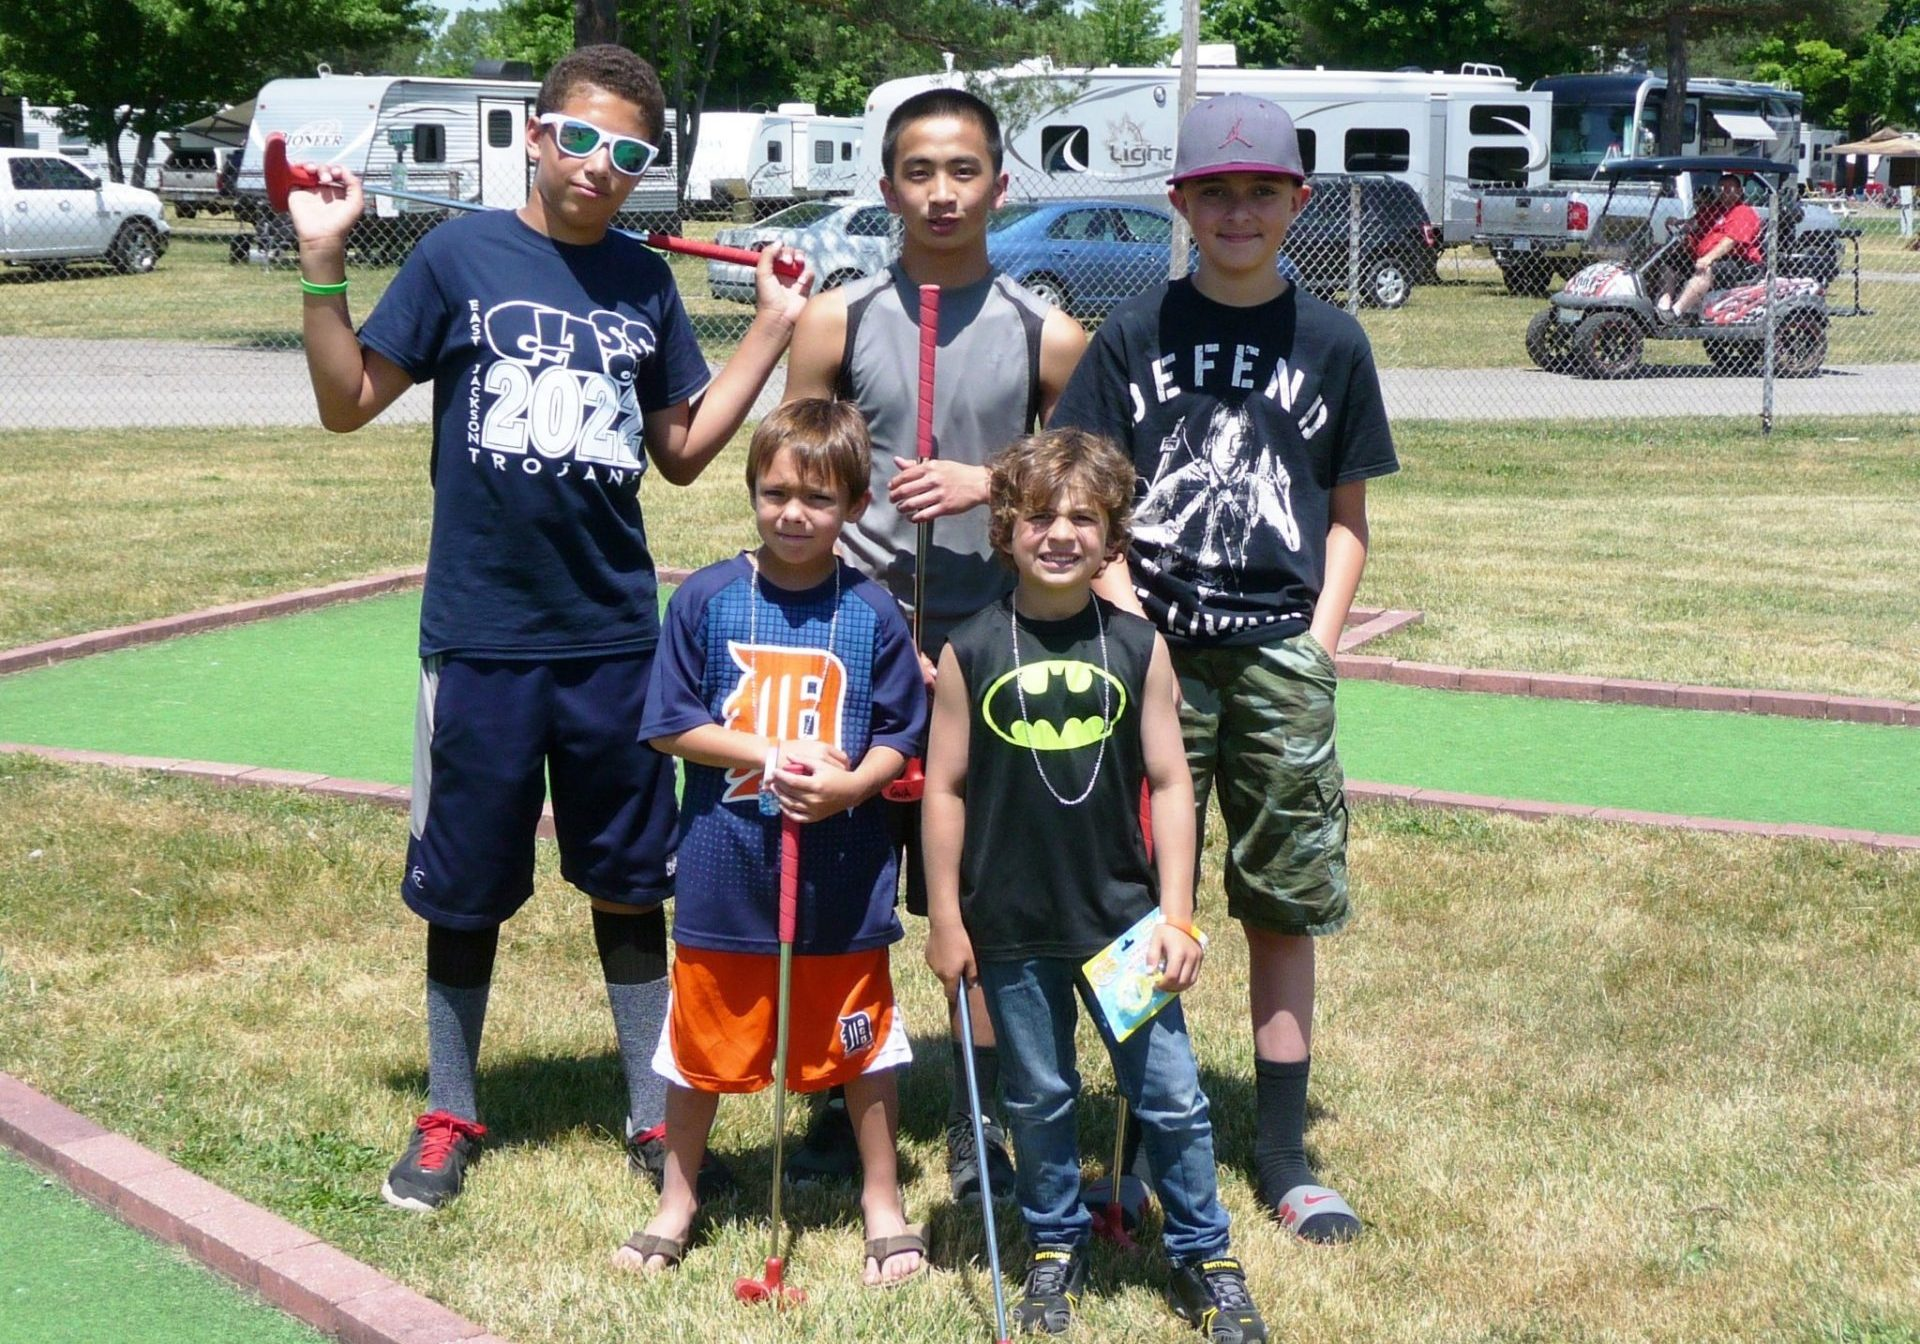 Mini Golf players